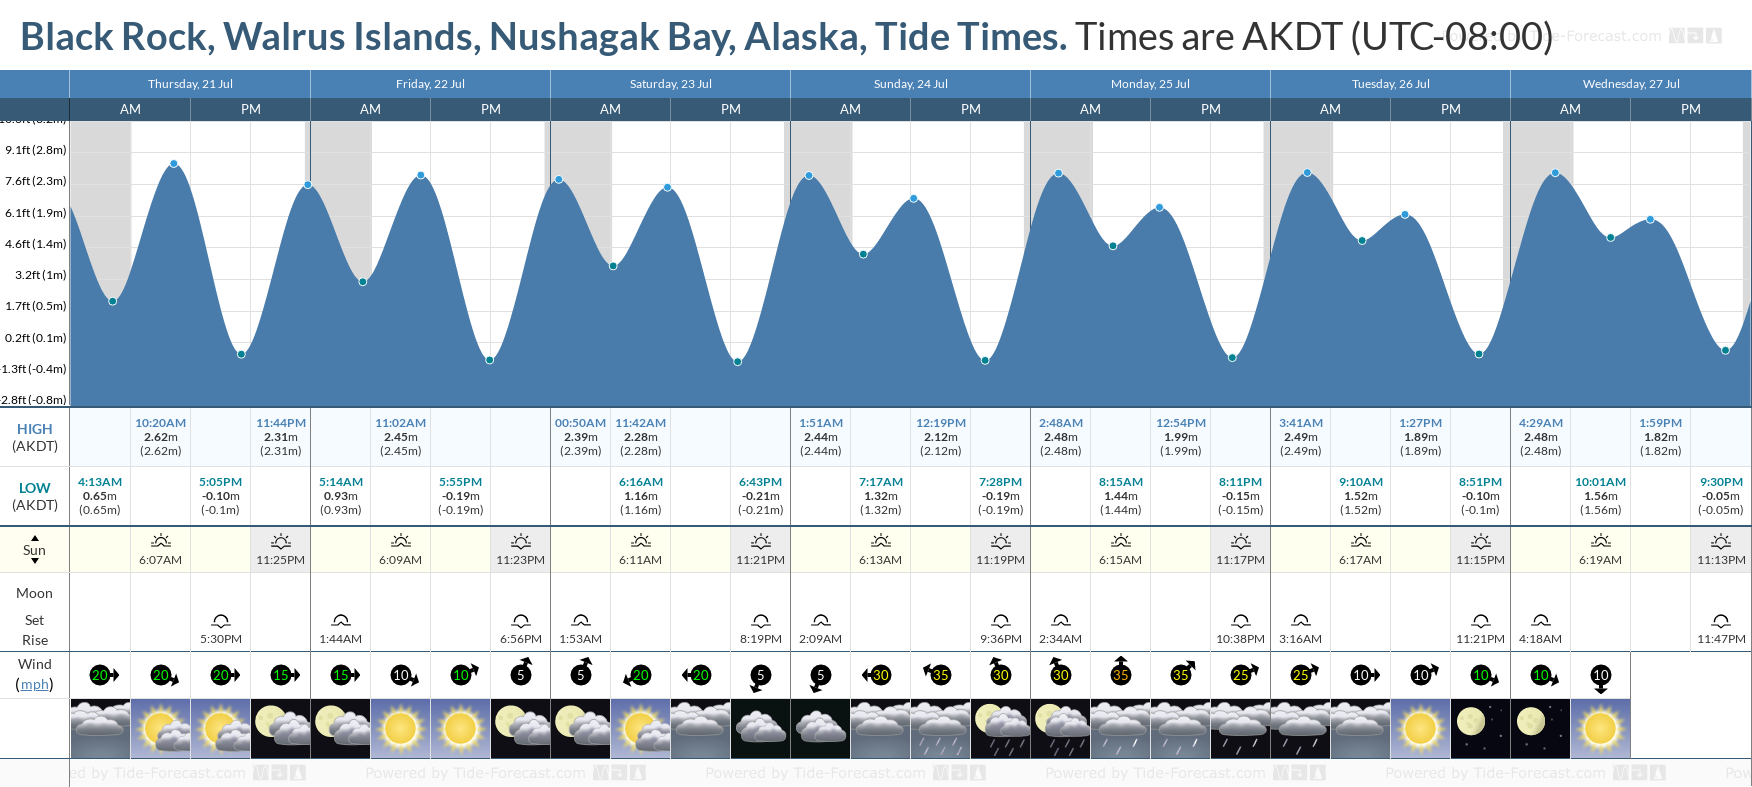 Black Rock, Walrus Islands, Nushagak Bay, Alaska Tide Chart including high and low tide tide times for the next 7 days